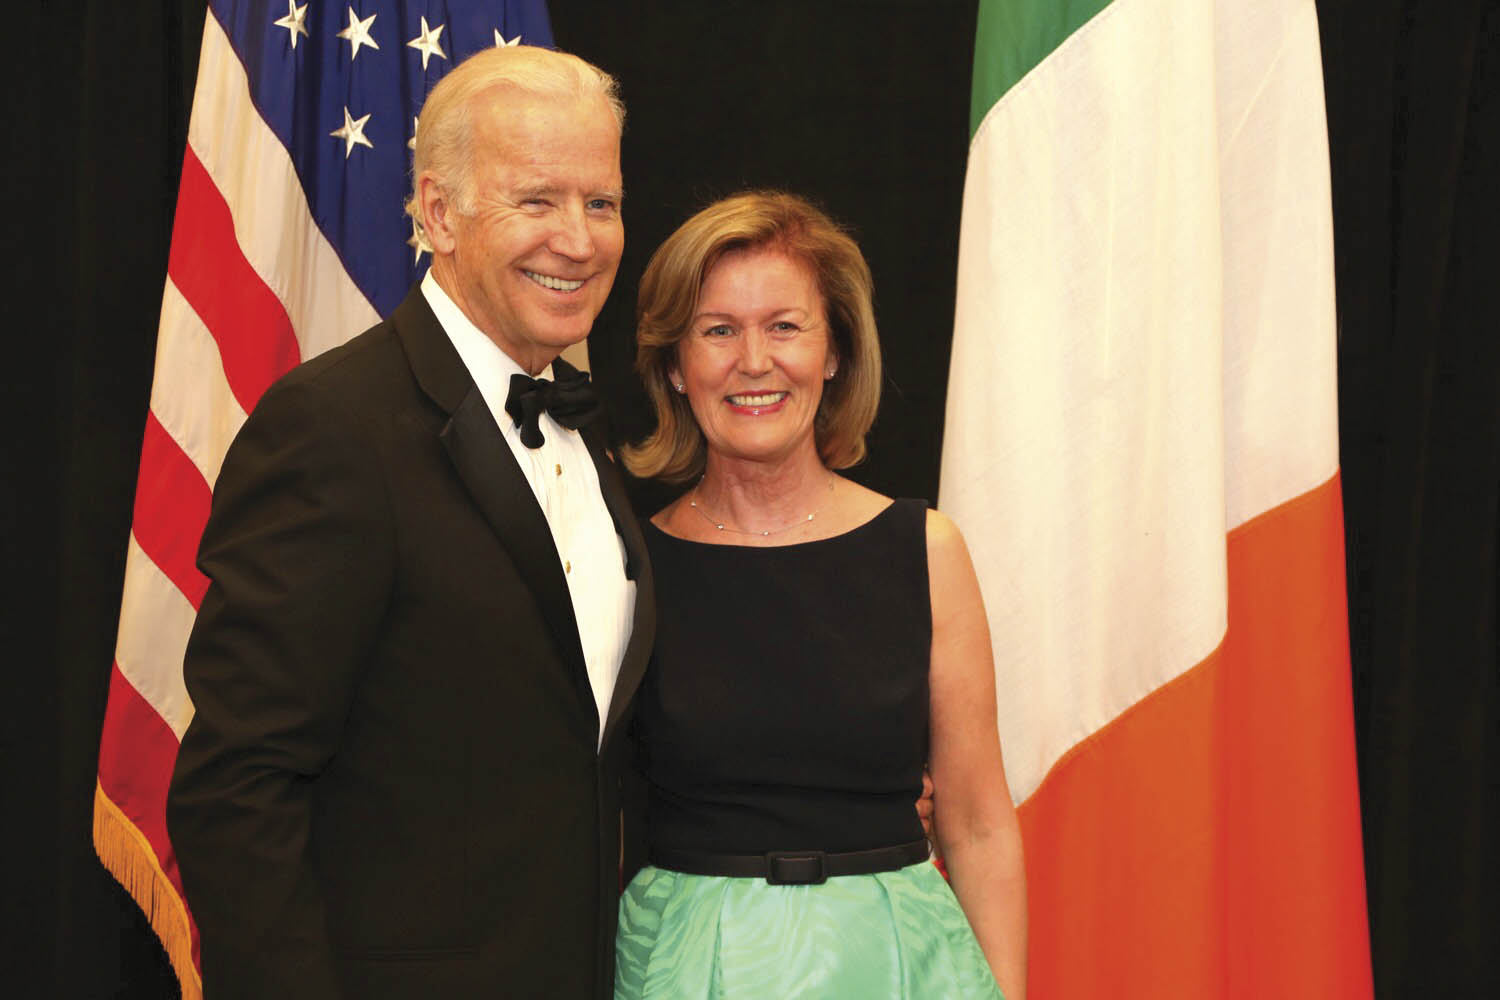 With Vice President Joe Biden who opened the Kennedy Center's Ireland 100: Celebrating a Century of Irish Arts & Culture with Taoiseach Enda Kenny. (Photo: Marty Katz)